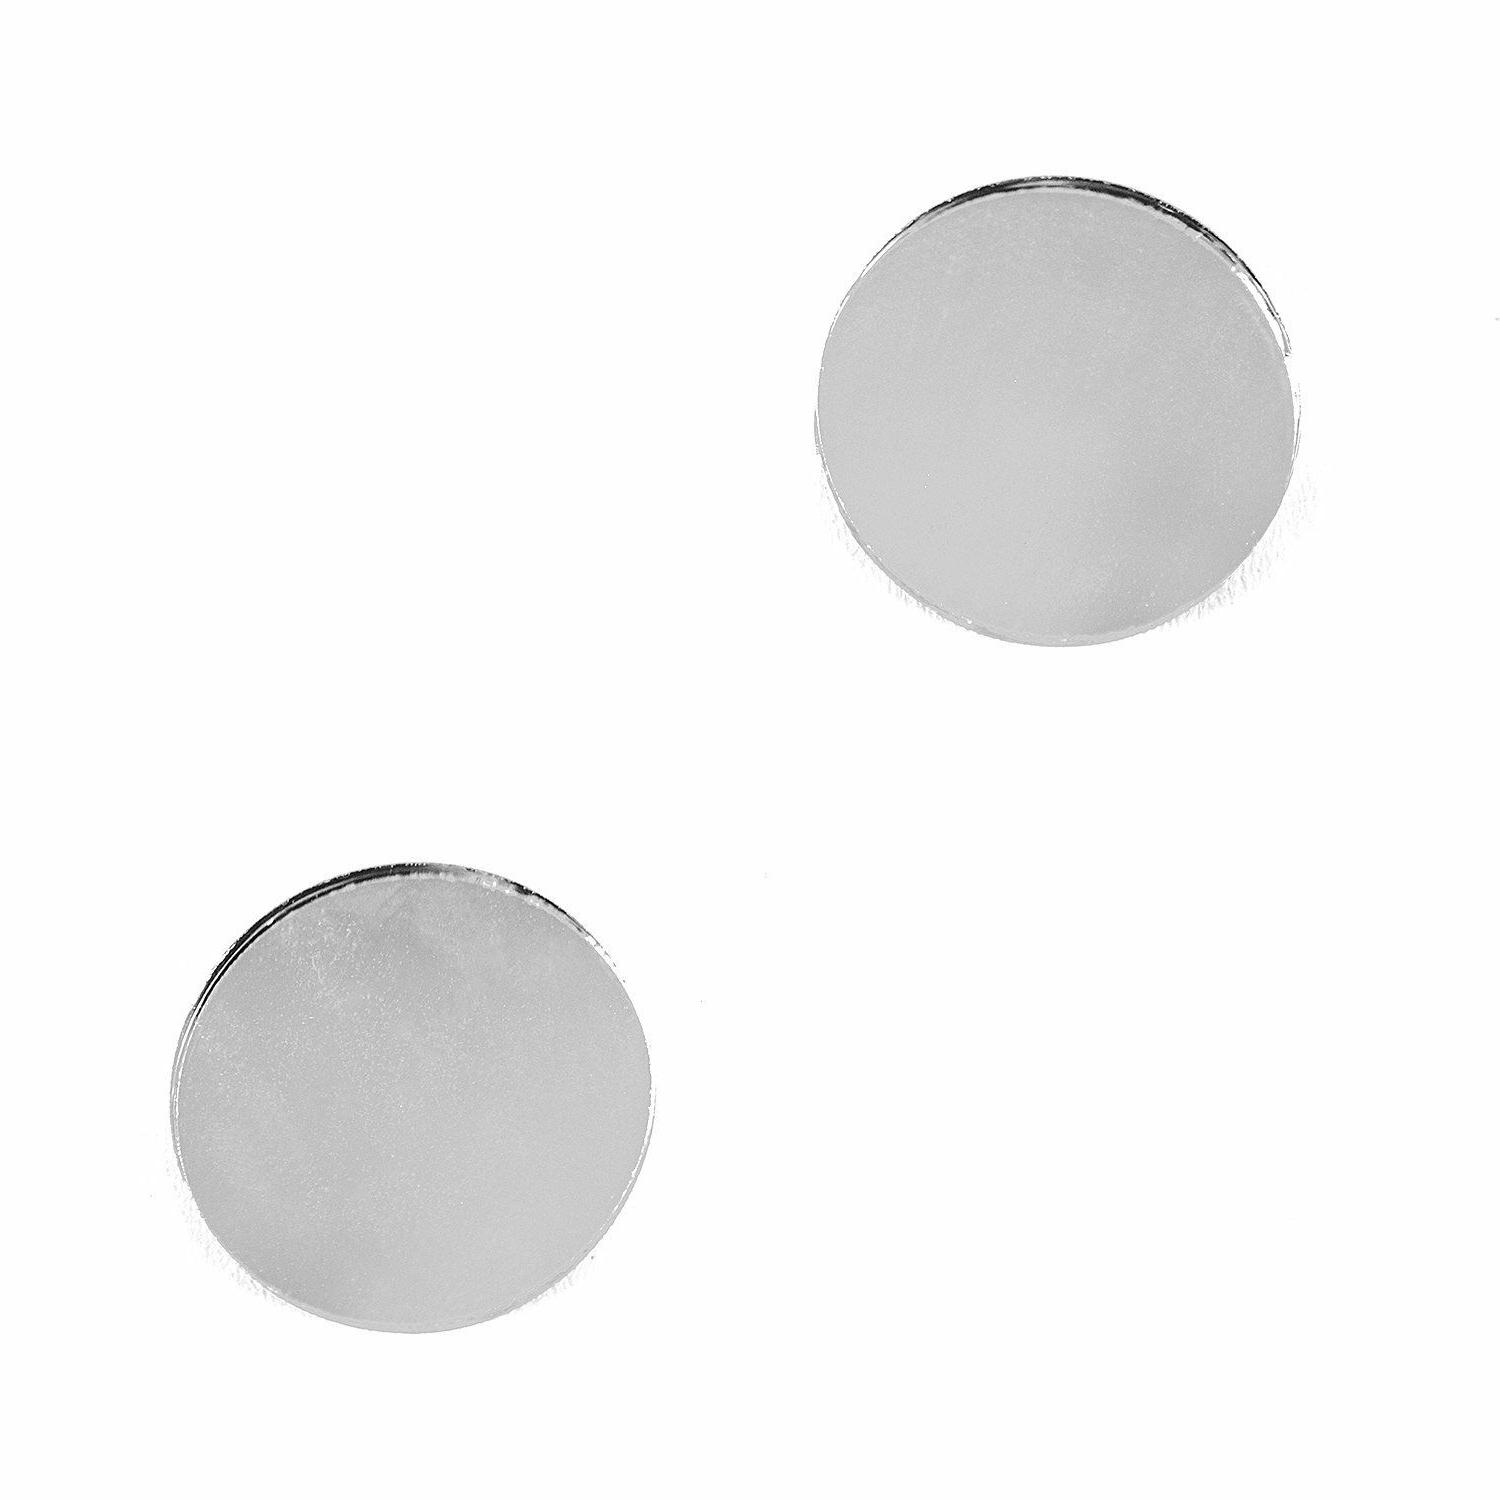 "1"" Mirrors Set Circles 50pc Small Round New"